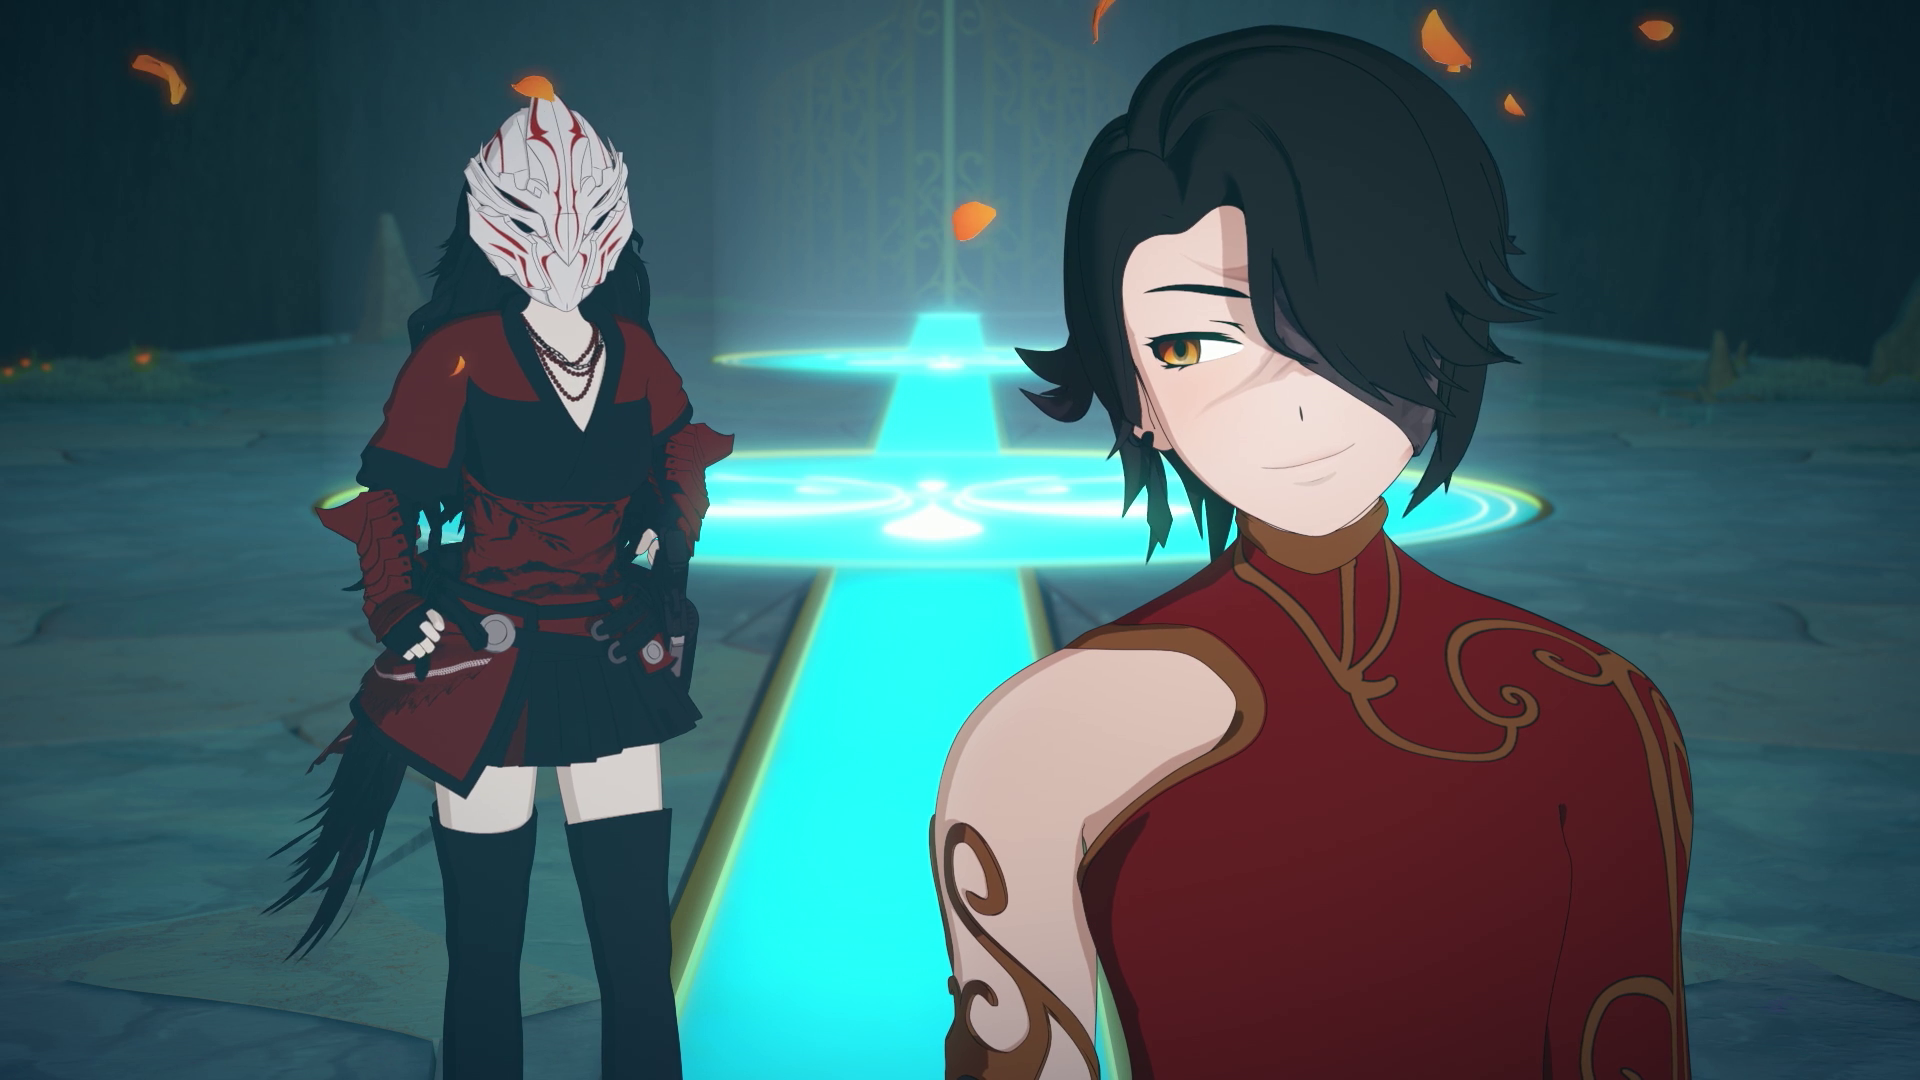 Cinder Fall Image Gallery Volume 5 Rwby Anime Rwby Fall Images Only while blake is frightened and trying to run away then, she's fighting here. cinder fall image gallery volume 5